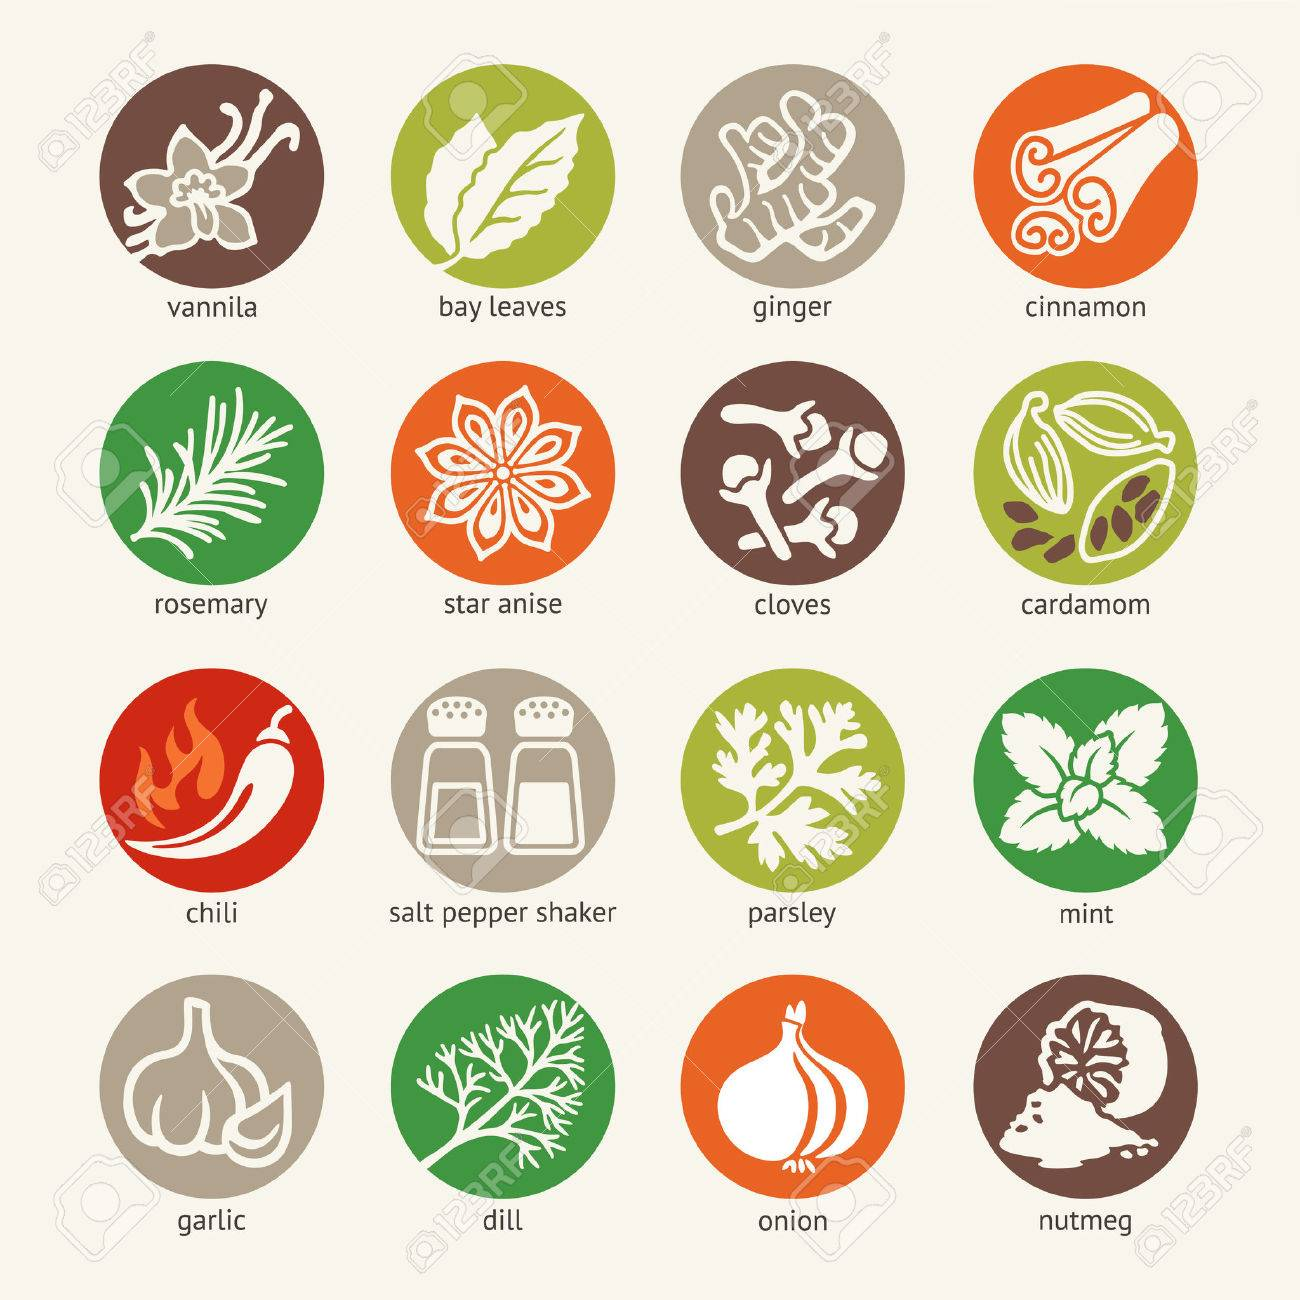 web icon set - spices, condiments and herbs - 35616437